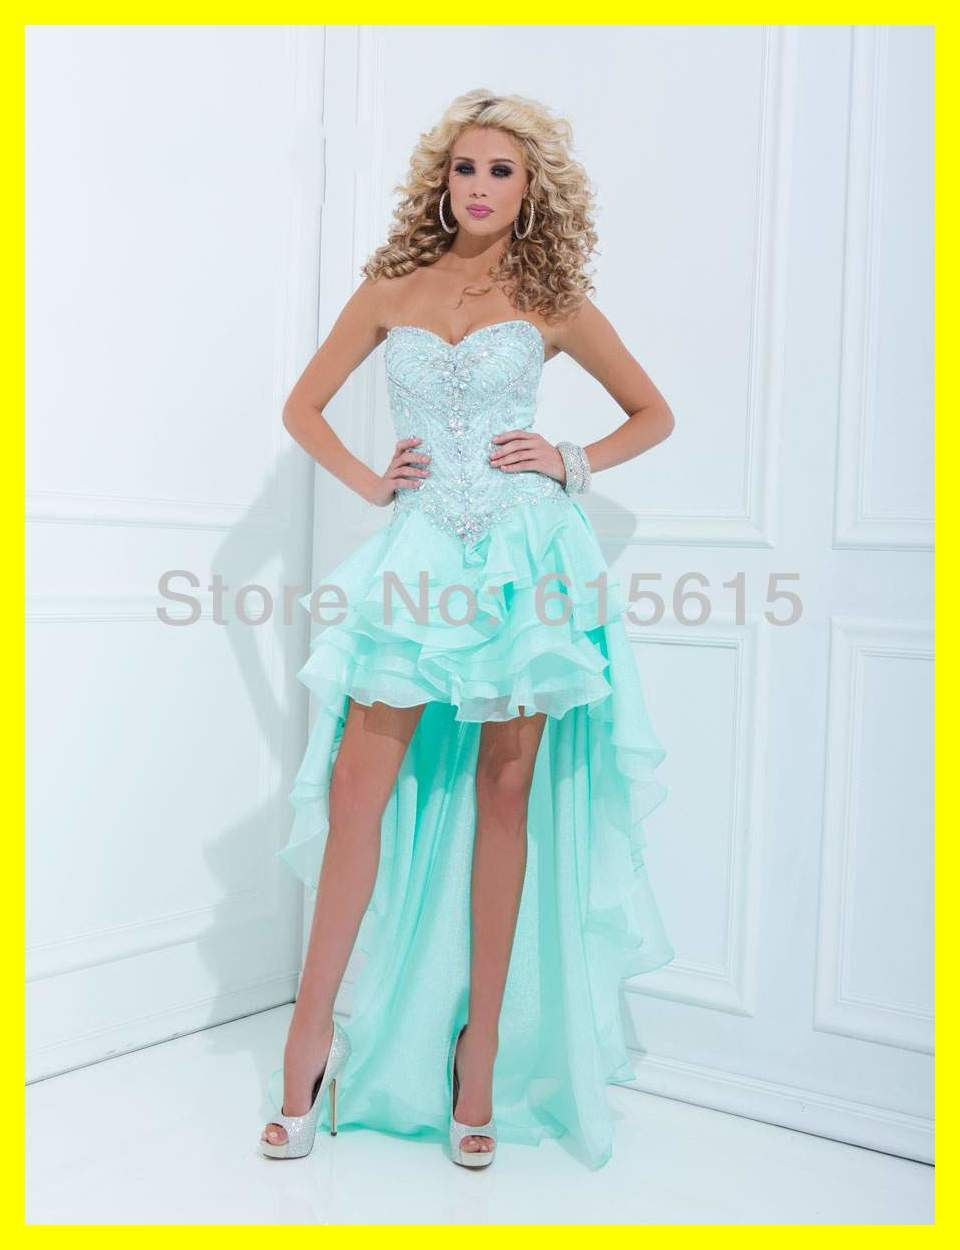 Shop For Prom Dresses White Long Gold Dress Teens Puffy Asymmetrical ...